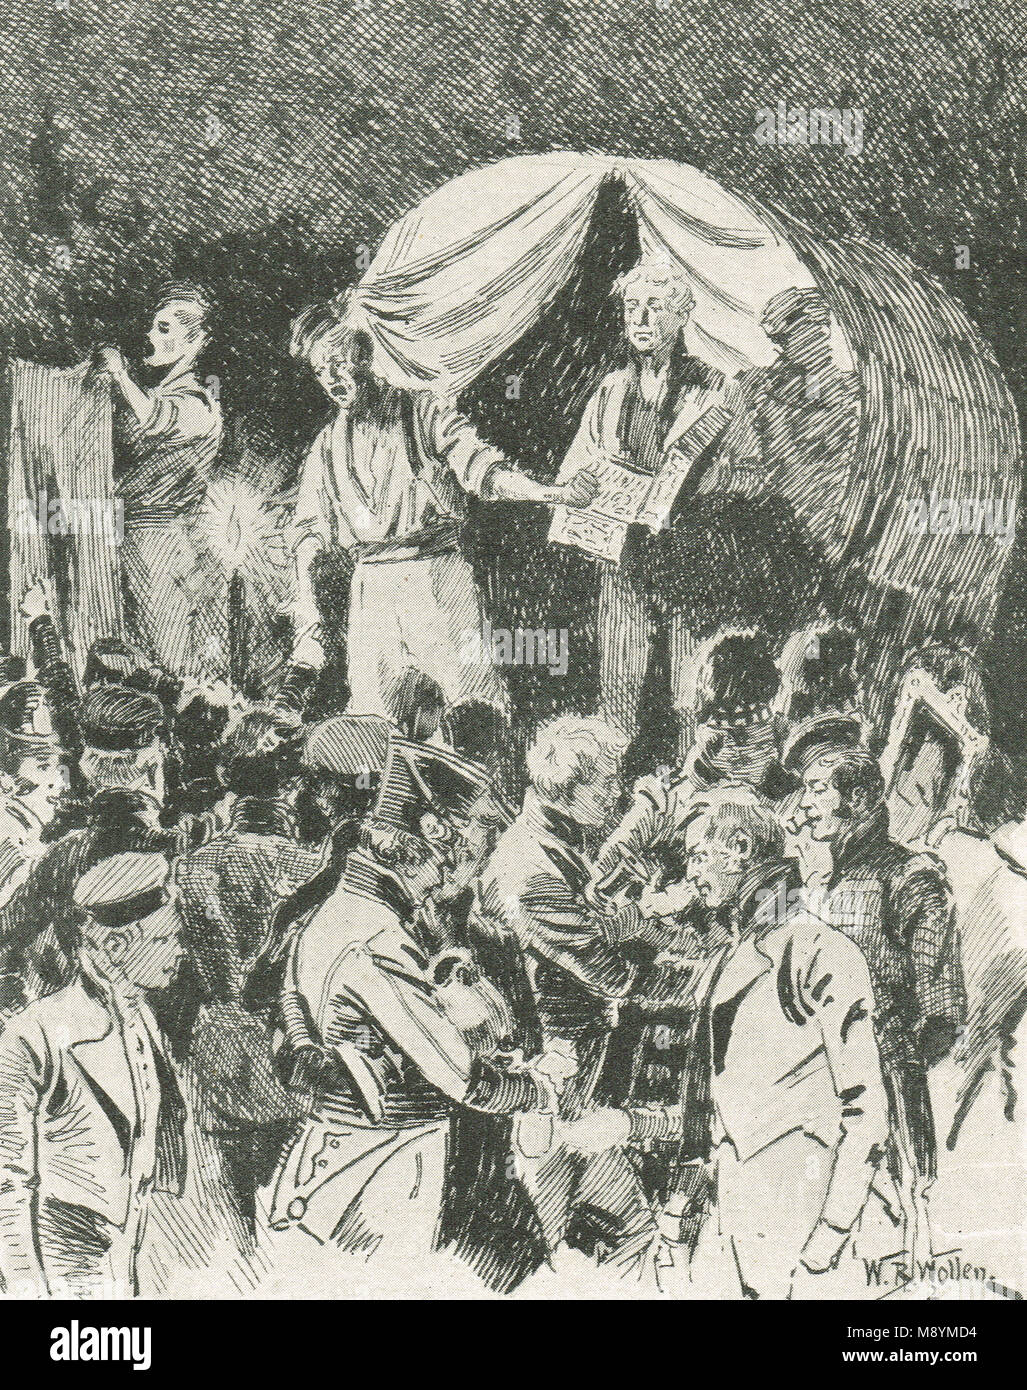 Auction of plunder from abandoned French wagons after the Battle of Vitoria, 21 June 1813 - Stock Image